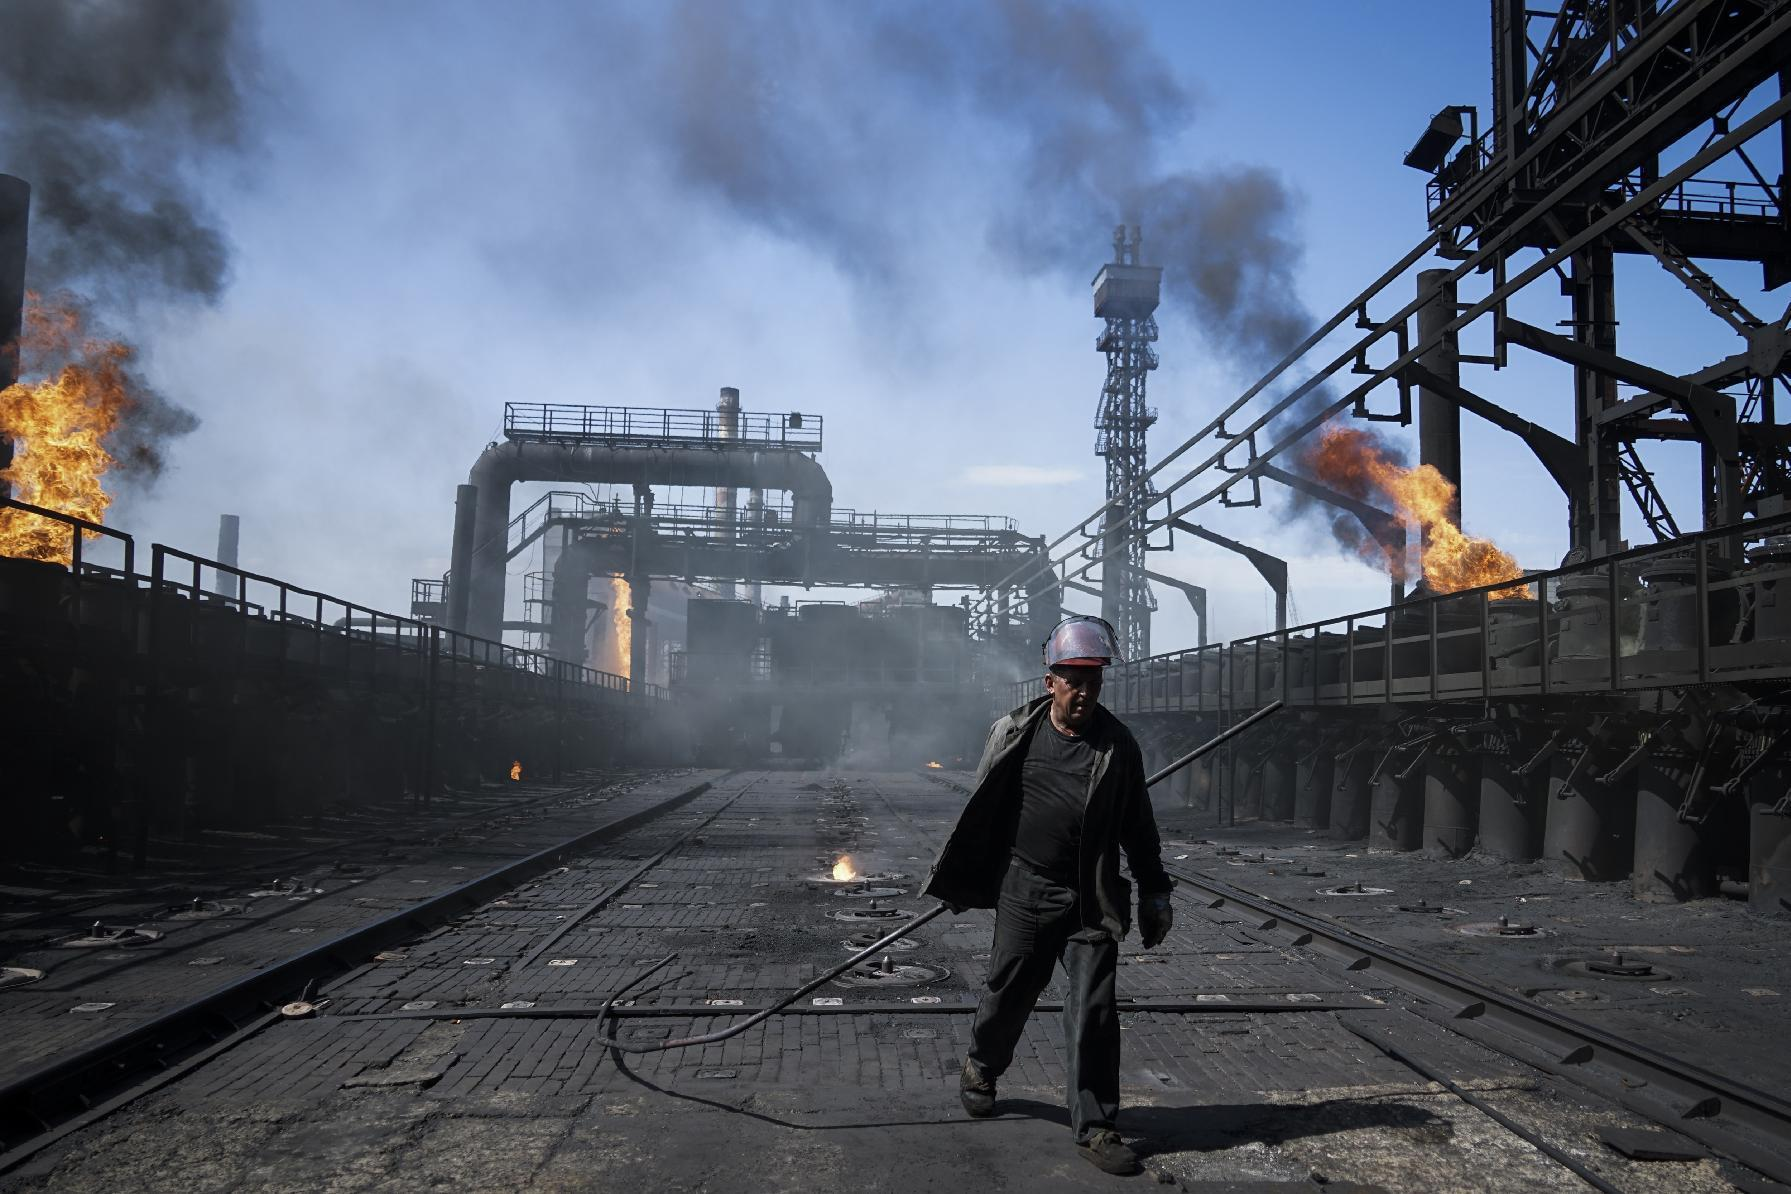 FILE In this Tuesday, Aug. 4, 2015 file photo a worker carries a metal rod at the front-line Avdiivka coking plant in eastern Ukraine. Fighting between government troops and separatist rebels in eastern Ukraine escalated on Tuesday, Jan. 31, 2017, killing several people overnight, injuring many more and trapping 200 coalminers underground, the warring sides reported. (AP Photo/Mstyslav Chernov, File)